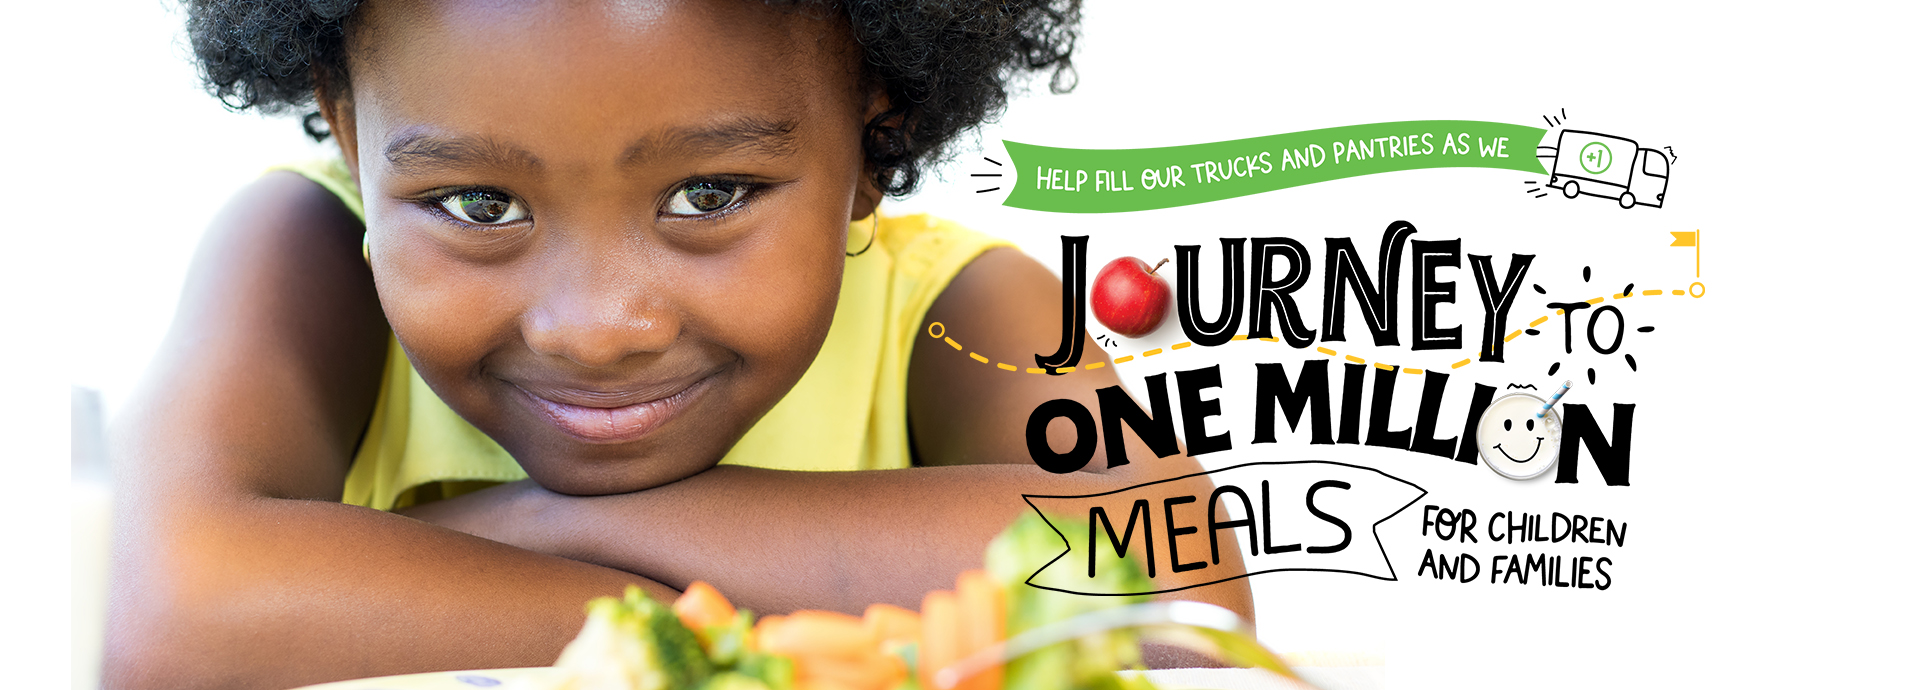 Journey to One Millions Meals